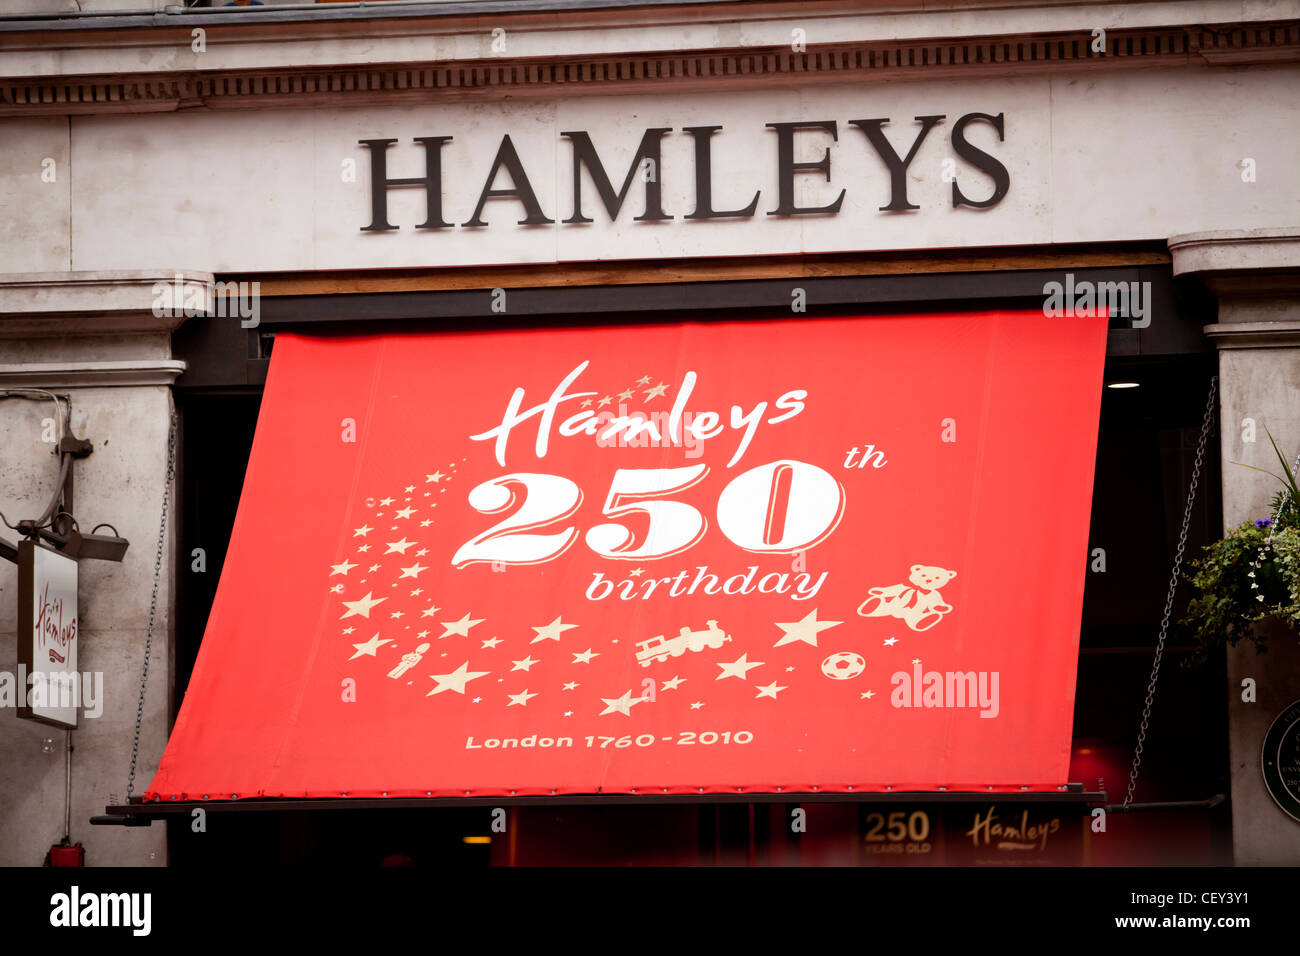 A view of the front of Hamleys toy shop in London on its 250th birthday - Stock Image